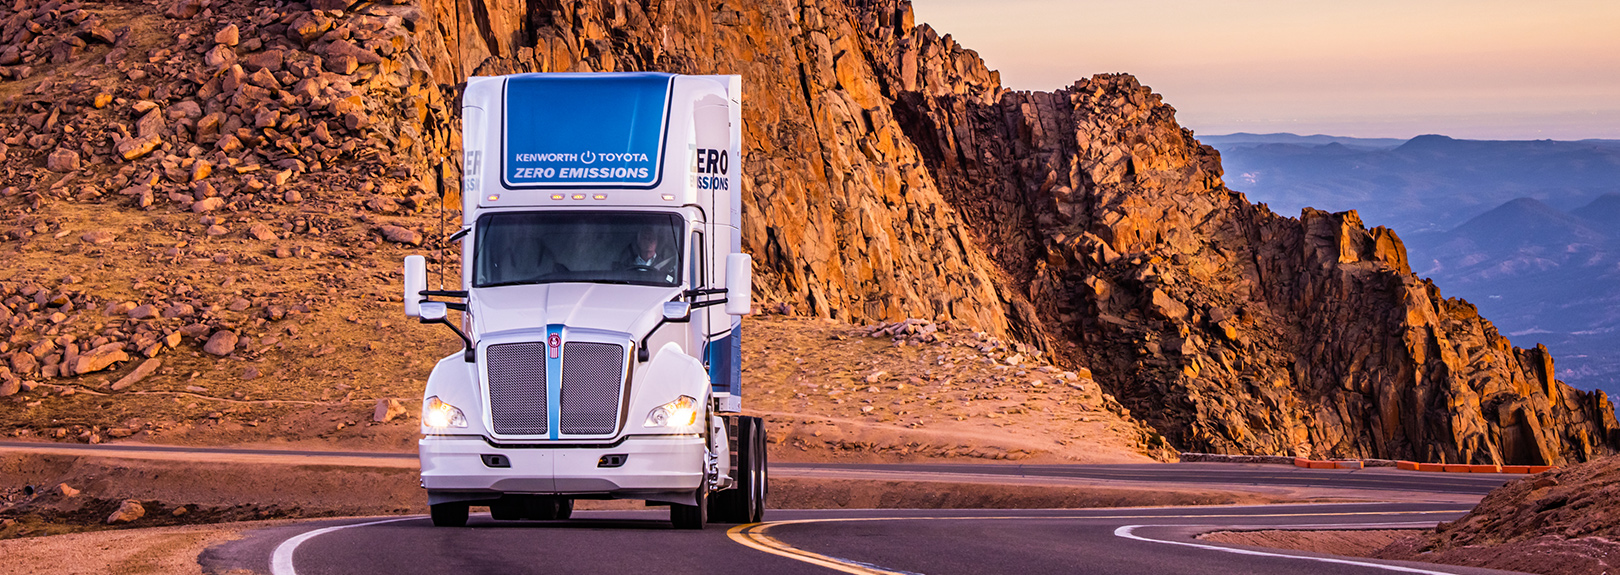 Kenworth zero emission truck driving on the highway